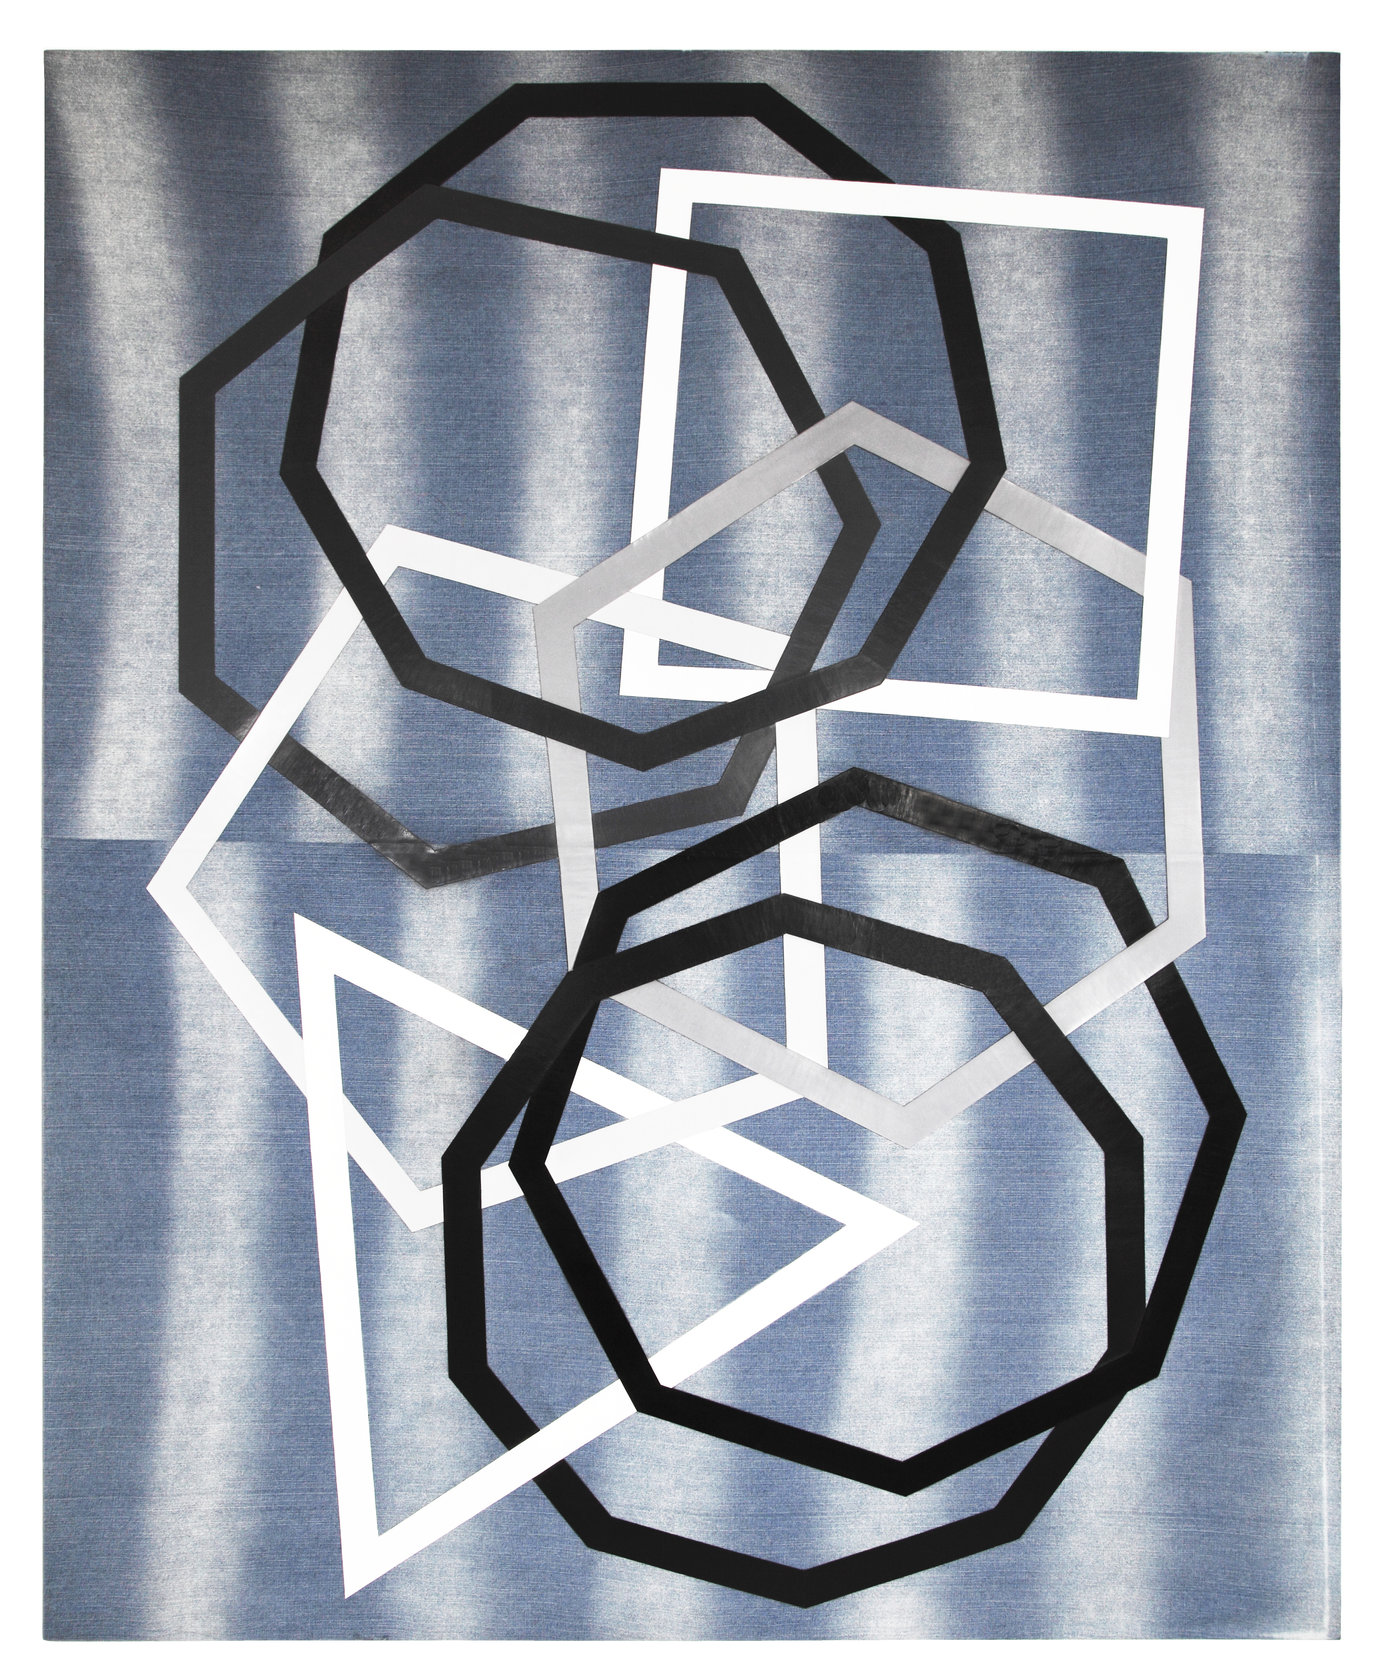 , 2012. acrylic on denim, 250 x 200 x 8 cm.